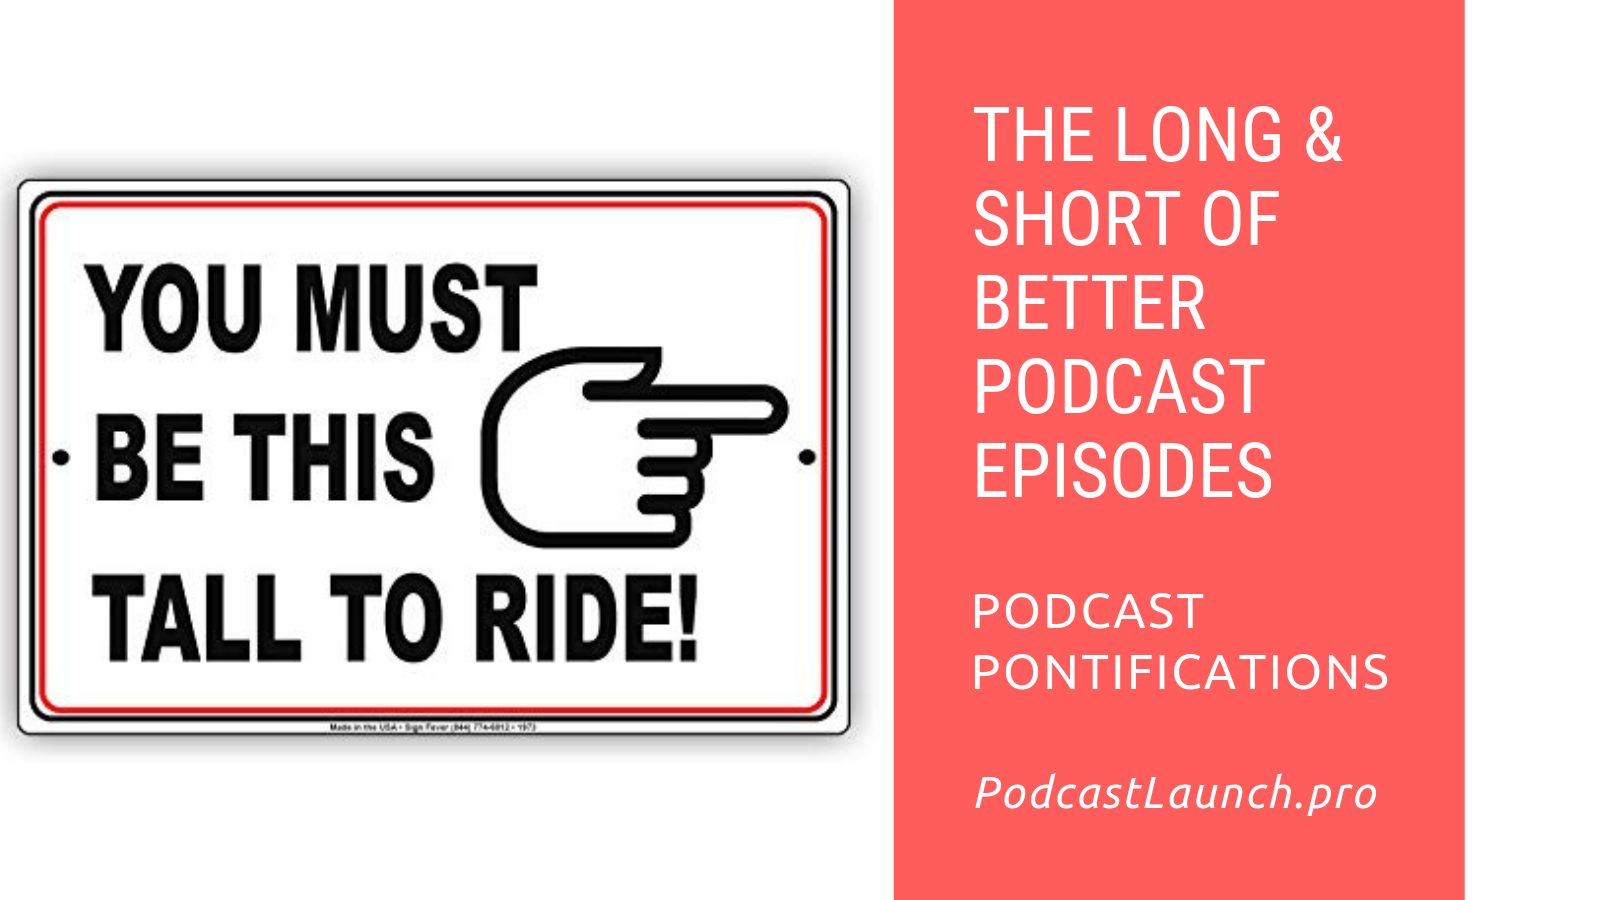 The Long & Short Of Better Podcast Episodes